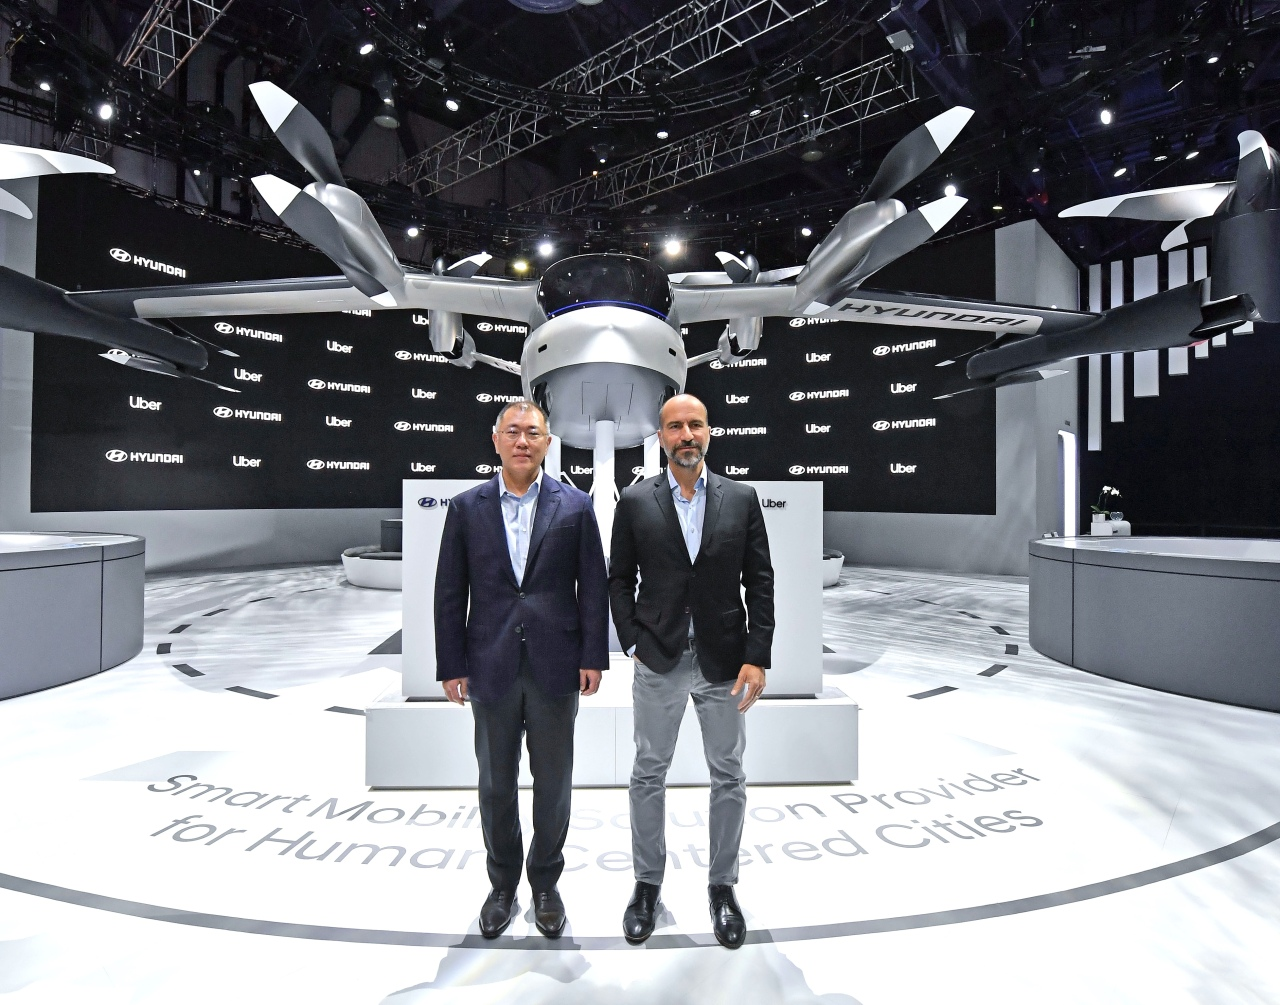 Hyundai Motor Group Executive Vice Chairman Chung Euisun (left) and Uber CEO Dara Khosrowshahi pose for a photo after signing a partnership at Consumer Electronics Show 2020 in Las Vegas on Tuesday. Hyundai Motor Group